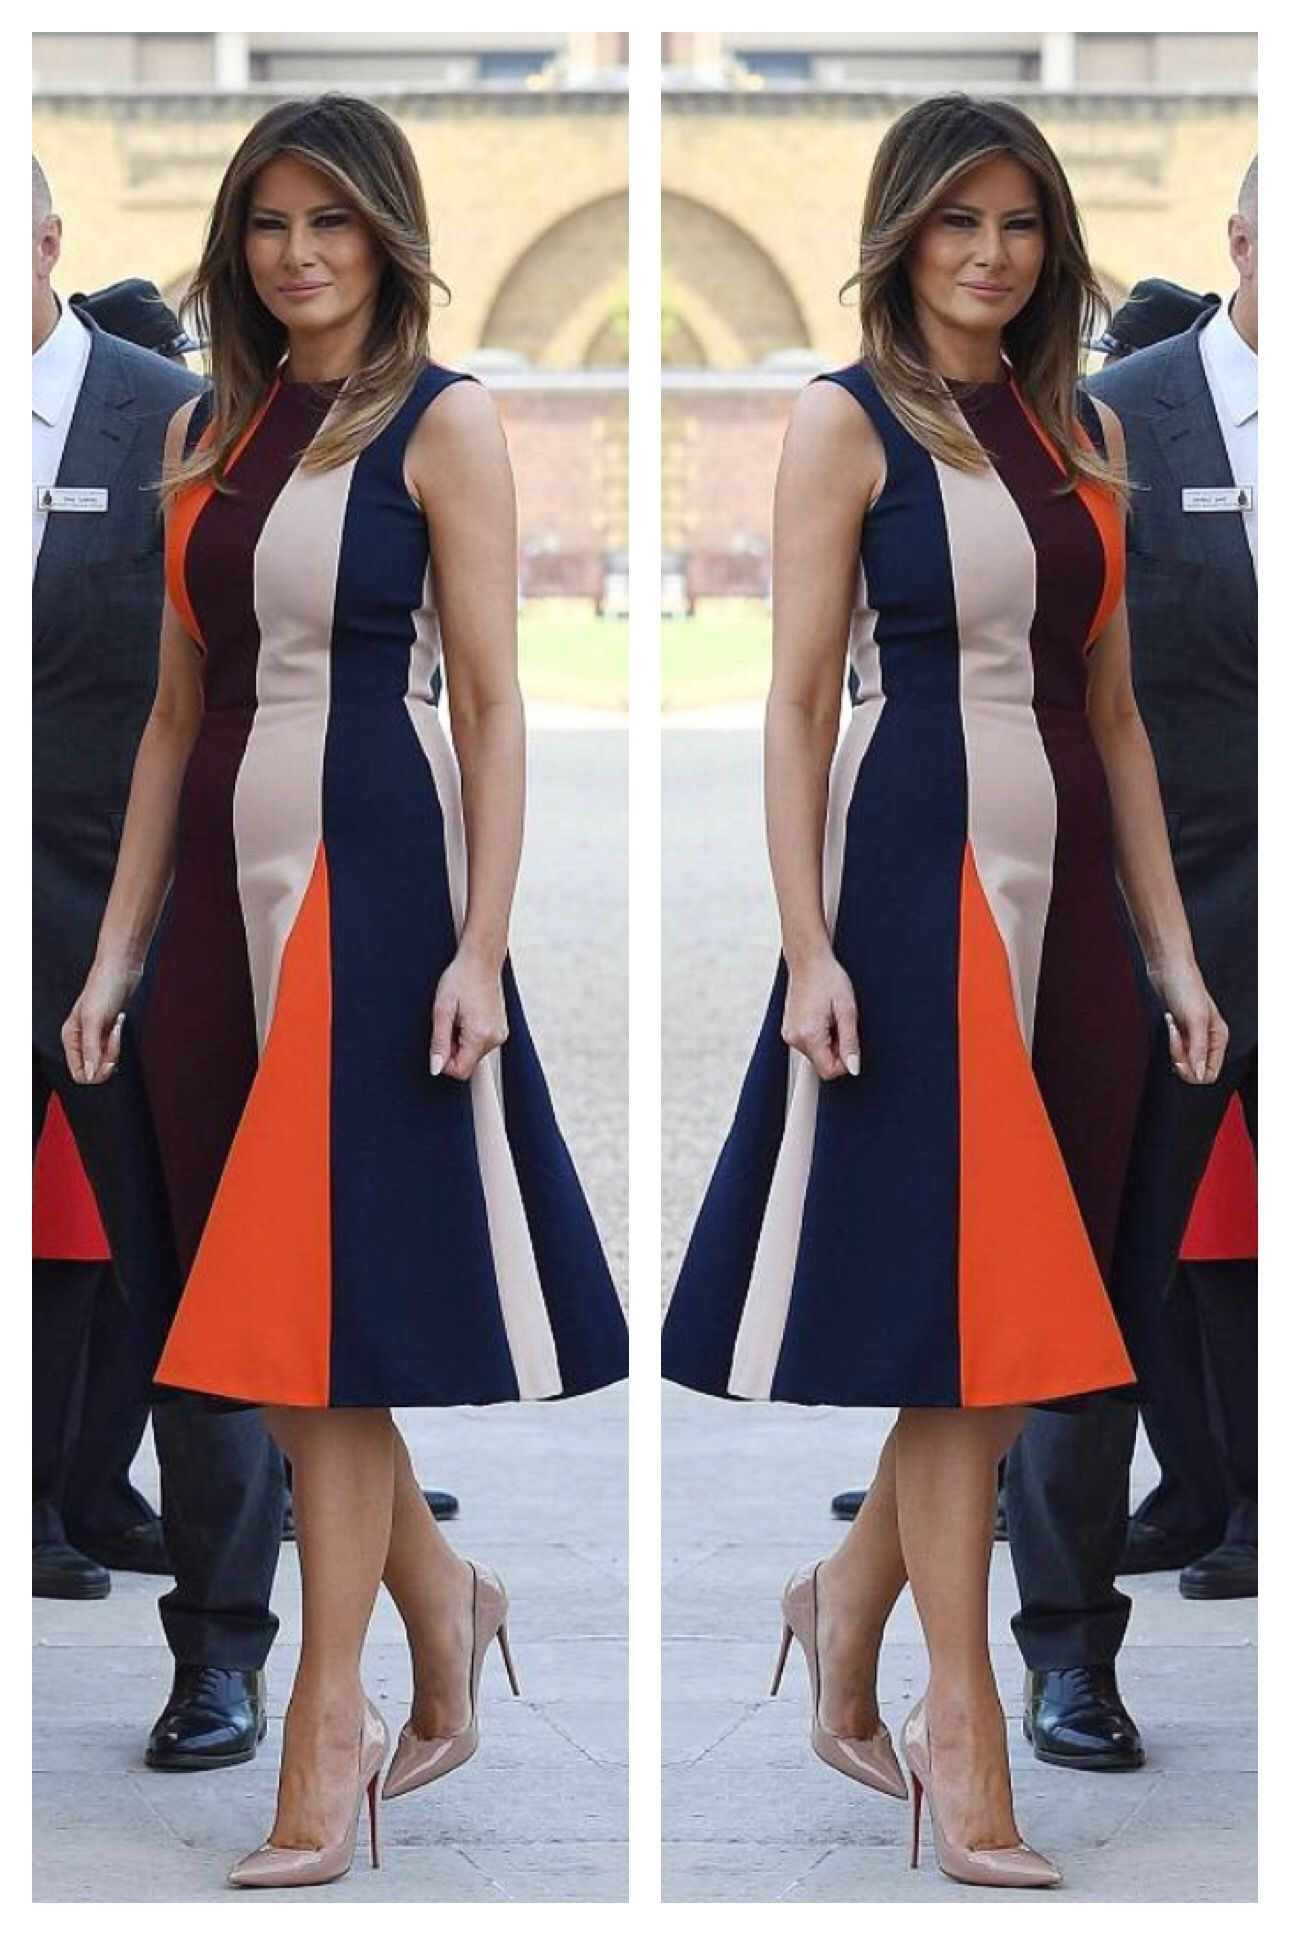 First Lady Melania Trump Would Like To See This Dress Worn With Navy Heels Instead Trump Fashion Chic Outfits Fashion